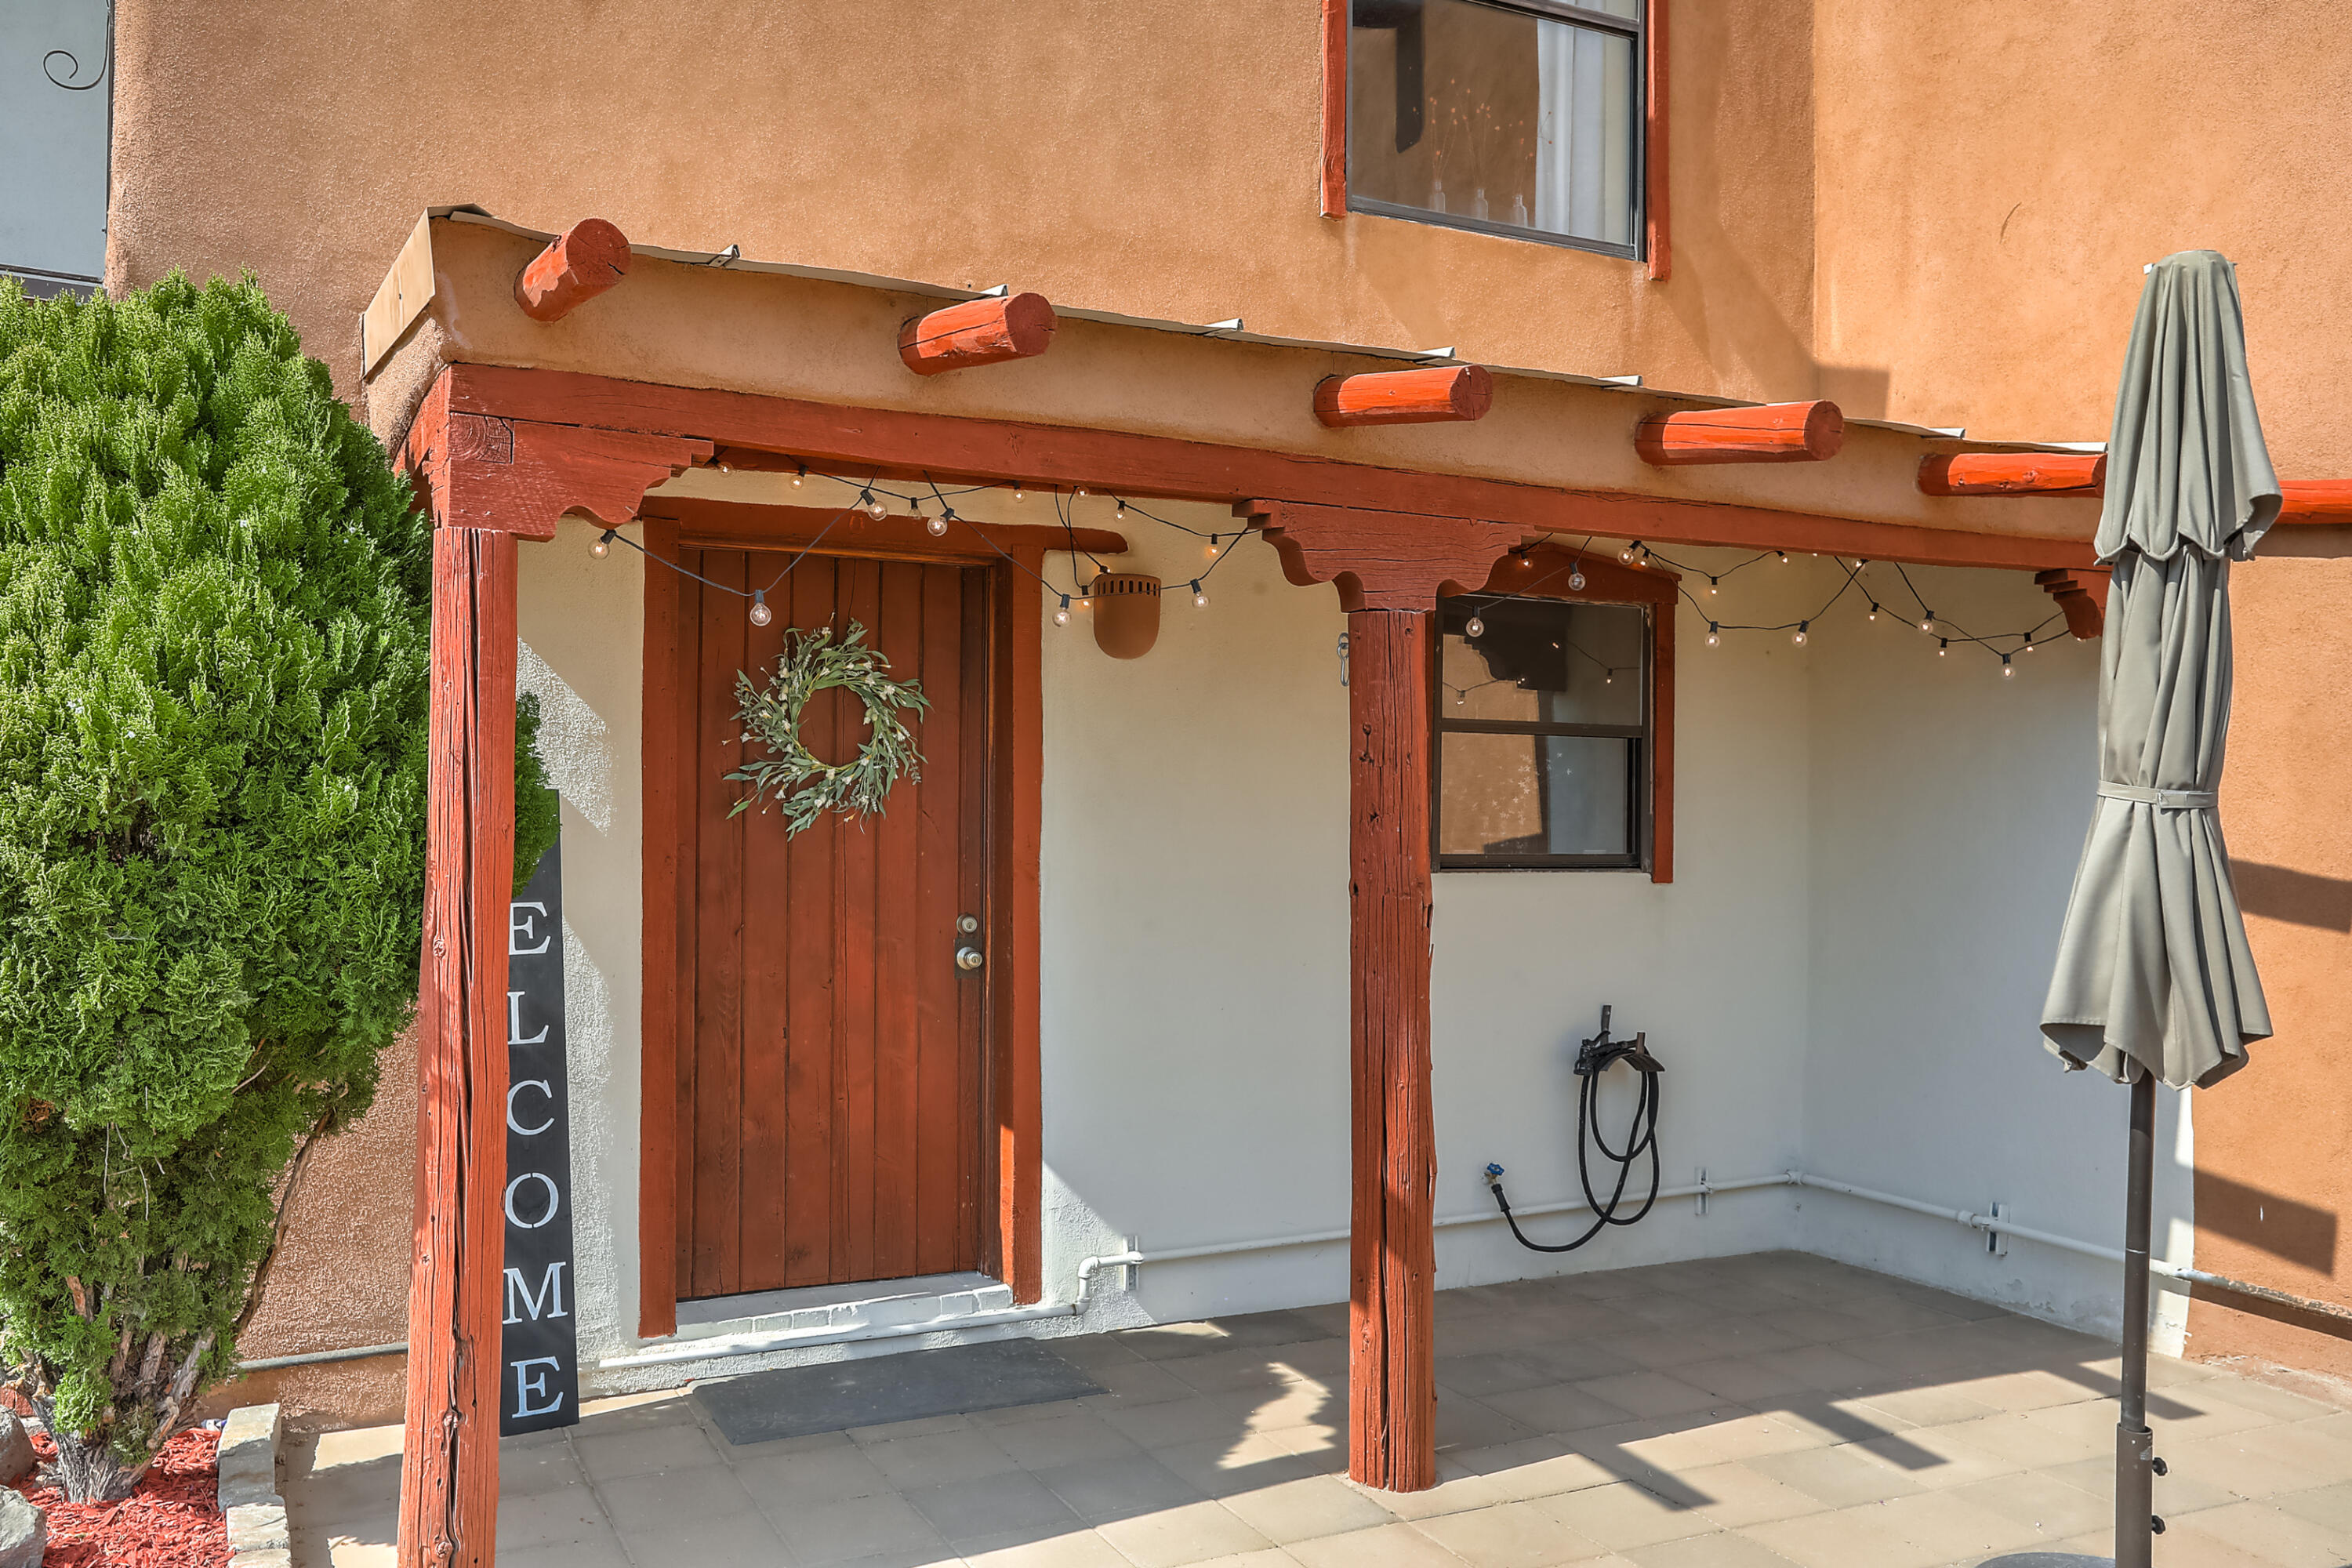 OPEN HOUSE 6.19.21 Saturday 2-4.  MARVELOUS 2-story townhome in Corrales with outstanding views! You will fall in love with the light and bright country interior with all the modern touches. Refinished brick flooring and a corner Kiva fireplace with banco seating and a wood ceiling--what's not to love about this southwestern gem?  Cute kitchen with plenty of cabinet and counter space for cooking up your favorite Southwestern dishes. 2 bedrooms upstairs with nice-sized closets and tile flooring. Private deck off of the master bedroom and a beautiful private backyard patio where you can sit and take in all that New Mexico fresh air. This is a great find, in a great place, at a great price! Schedule your showing today!